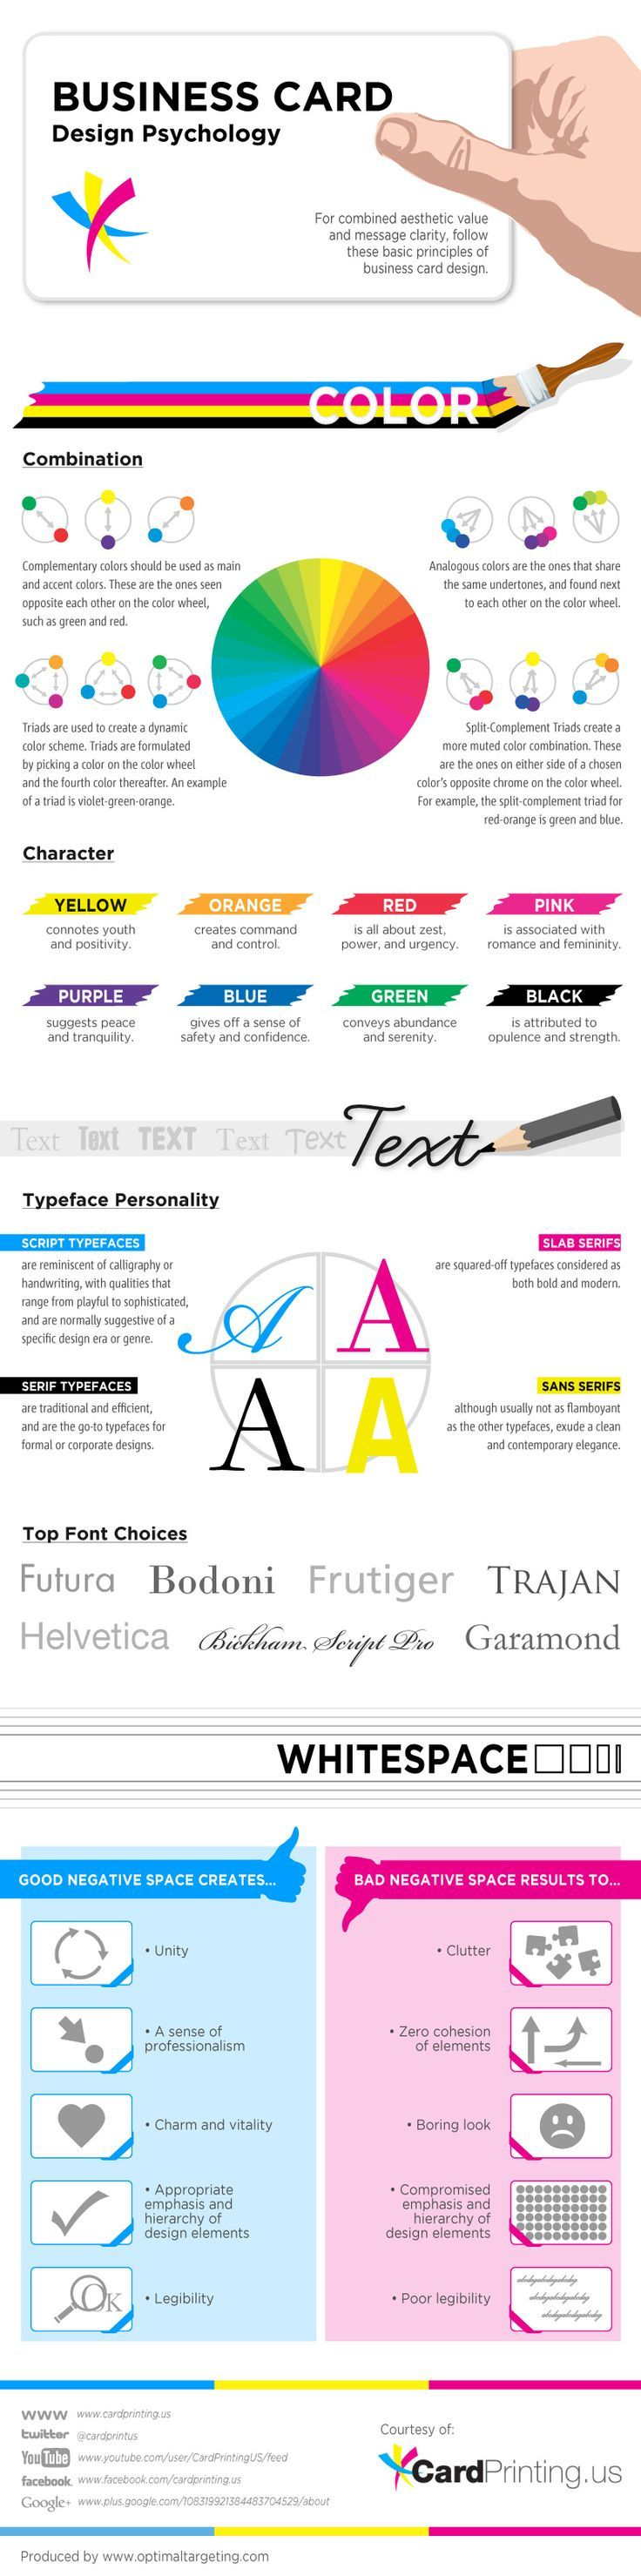 78 best business cards images on pinterest stationery colors this infographic focuses on the 3 most important elements of a business card color text and whitespace it is a good thing to reference when designing magicingreecefo Image collections